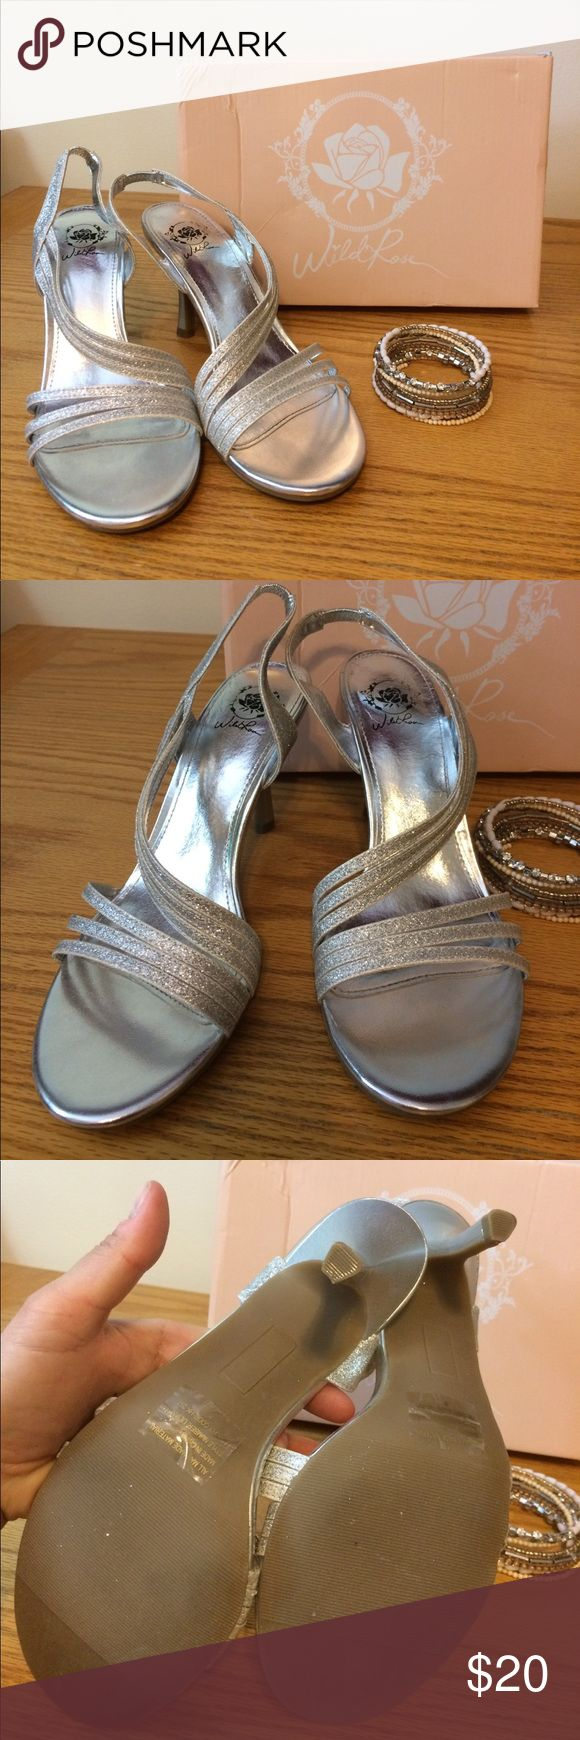 NWOT silver dress heels NEVER WORN!!! These were purchased for a wedding and then I never wore them. Silver sparkly dress heels.  So pretty! Wild Rose Shoes Heels